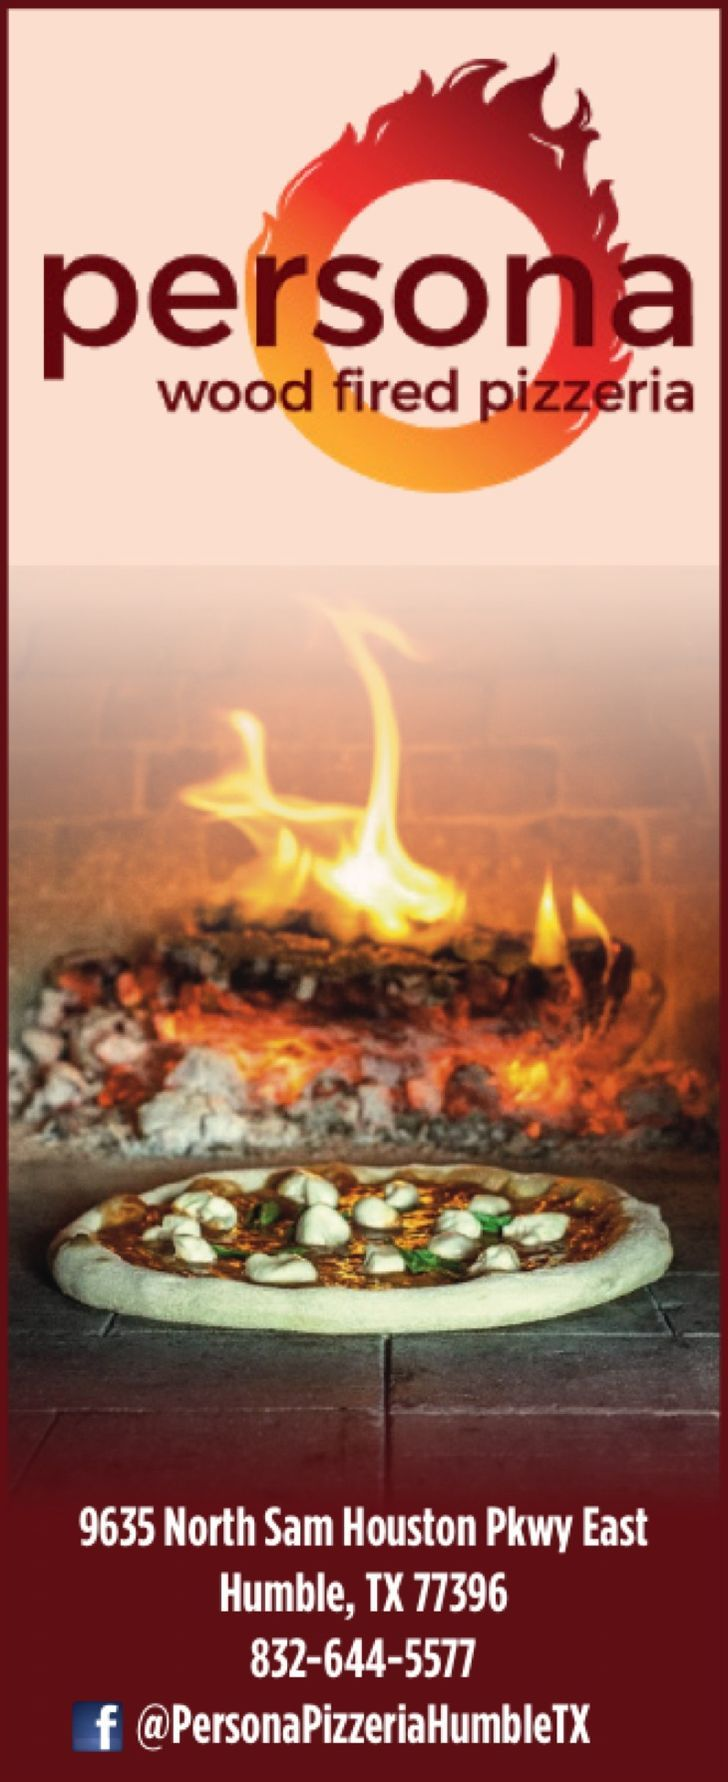 Persona Wood Fire Pizza